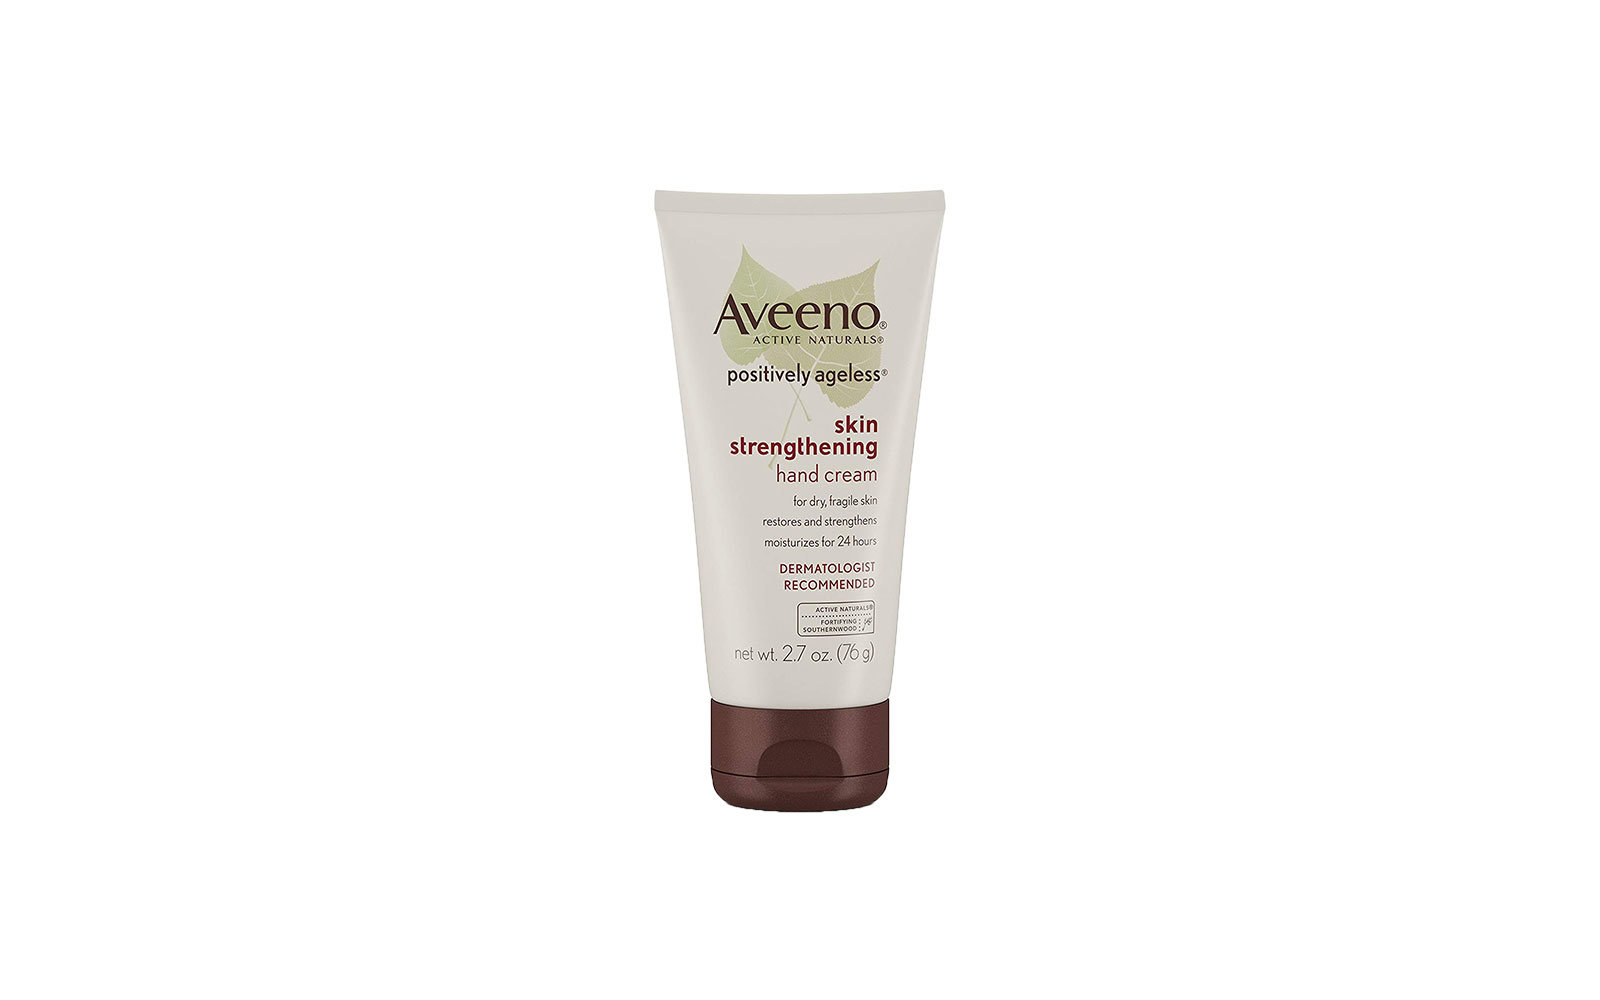 Best for Anti-Aging: Aveeno Positively Ageless